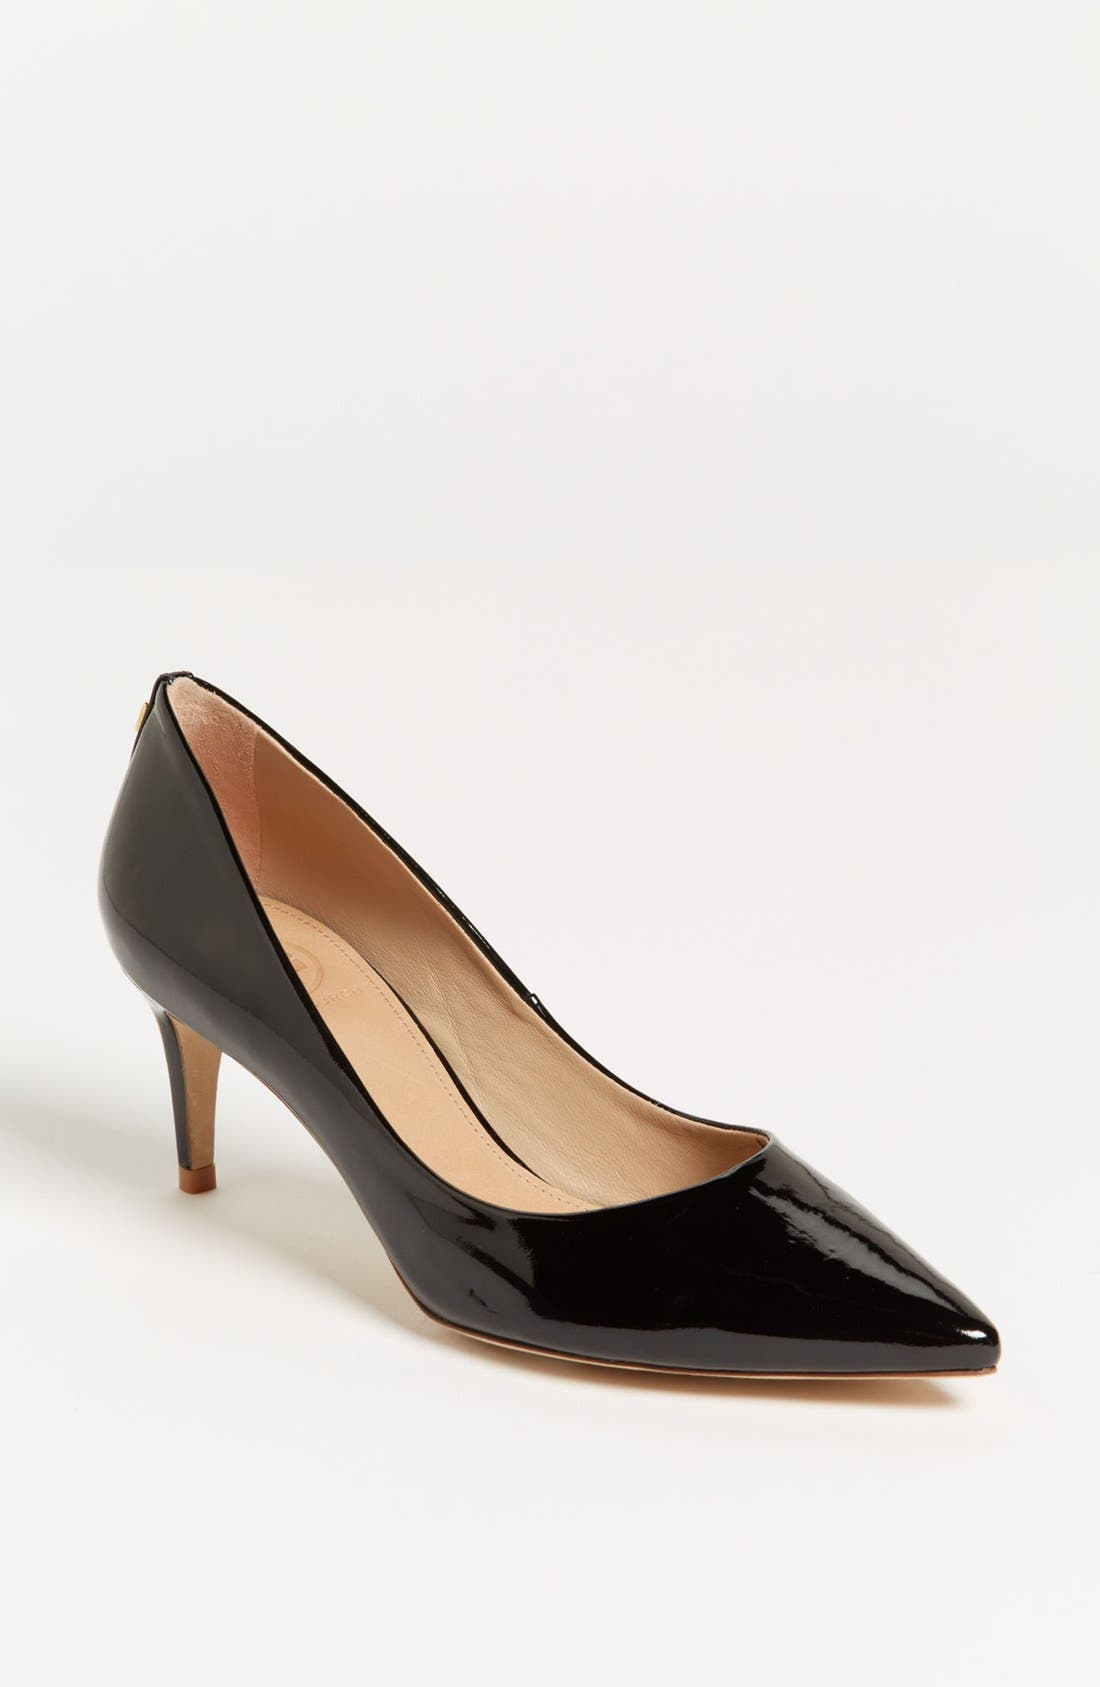 Main Image - Tory Burch 'Ivy' Pump (Online Only)